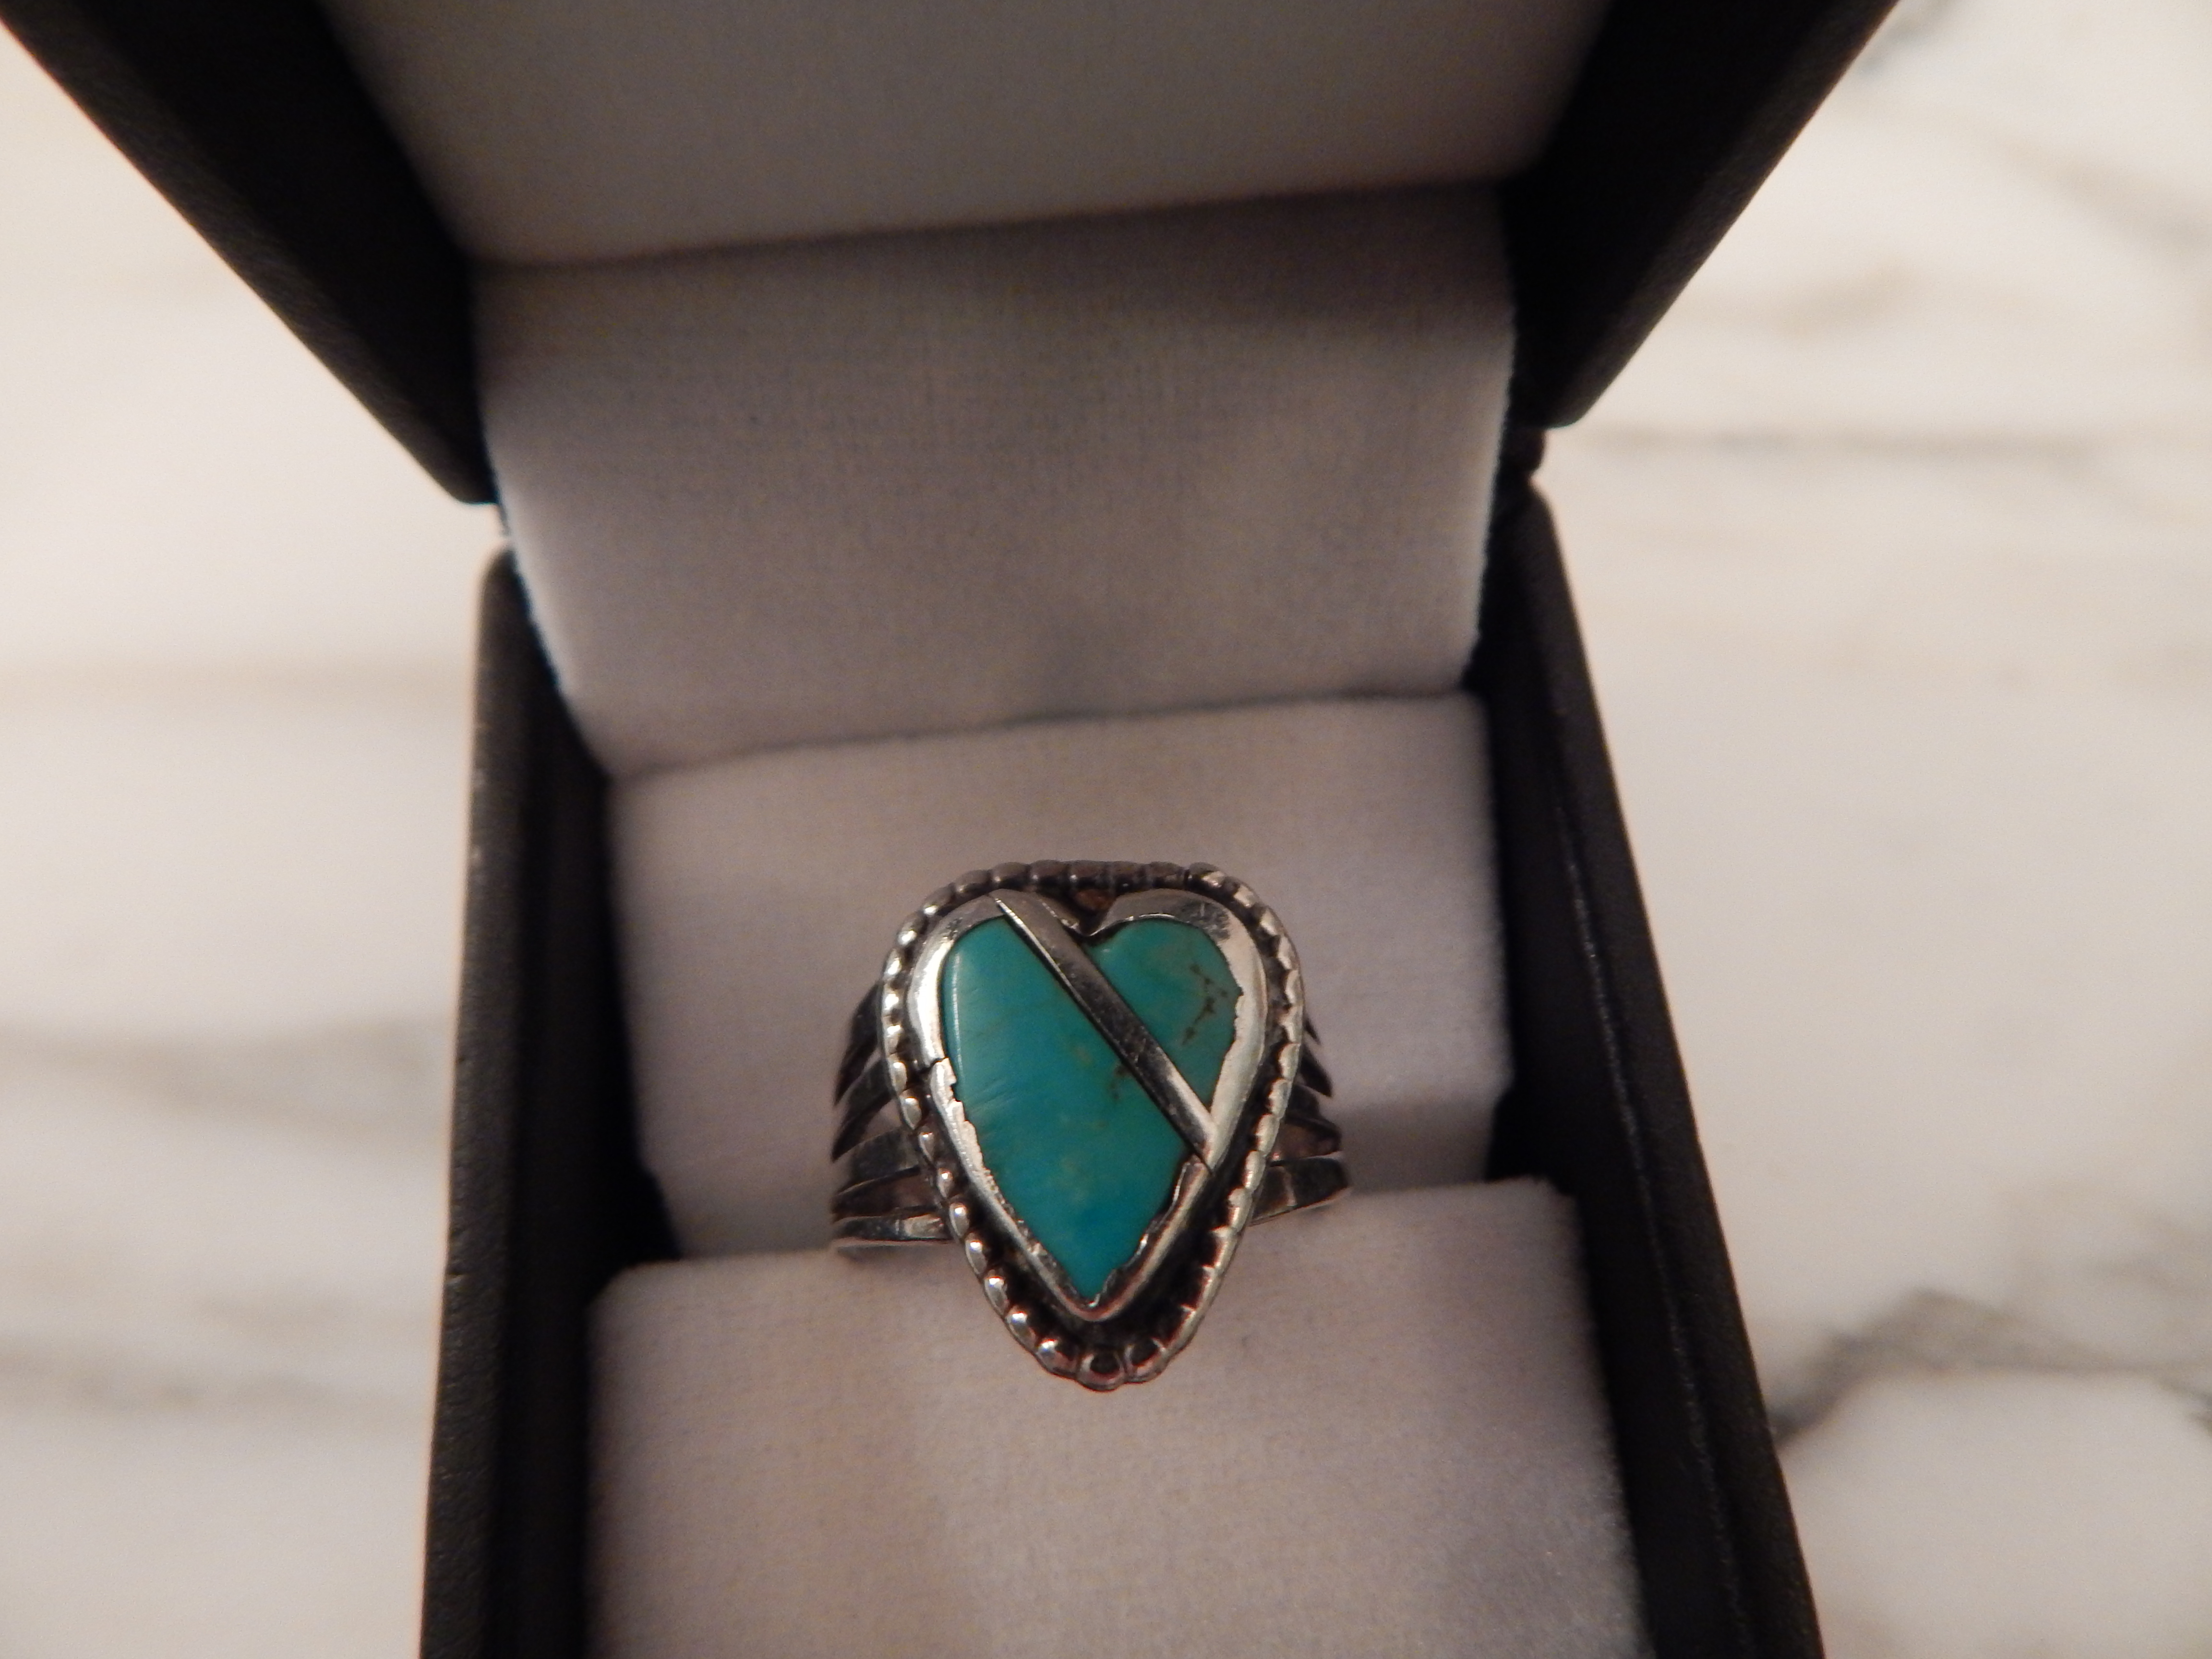 WOMAN'S TURQUOISE SILVER RING